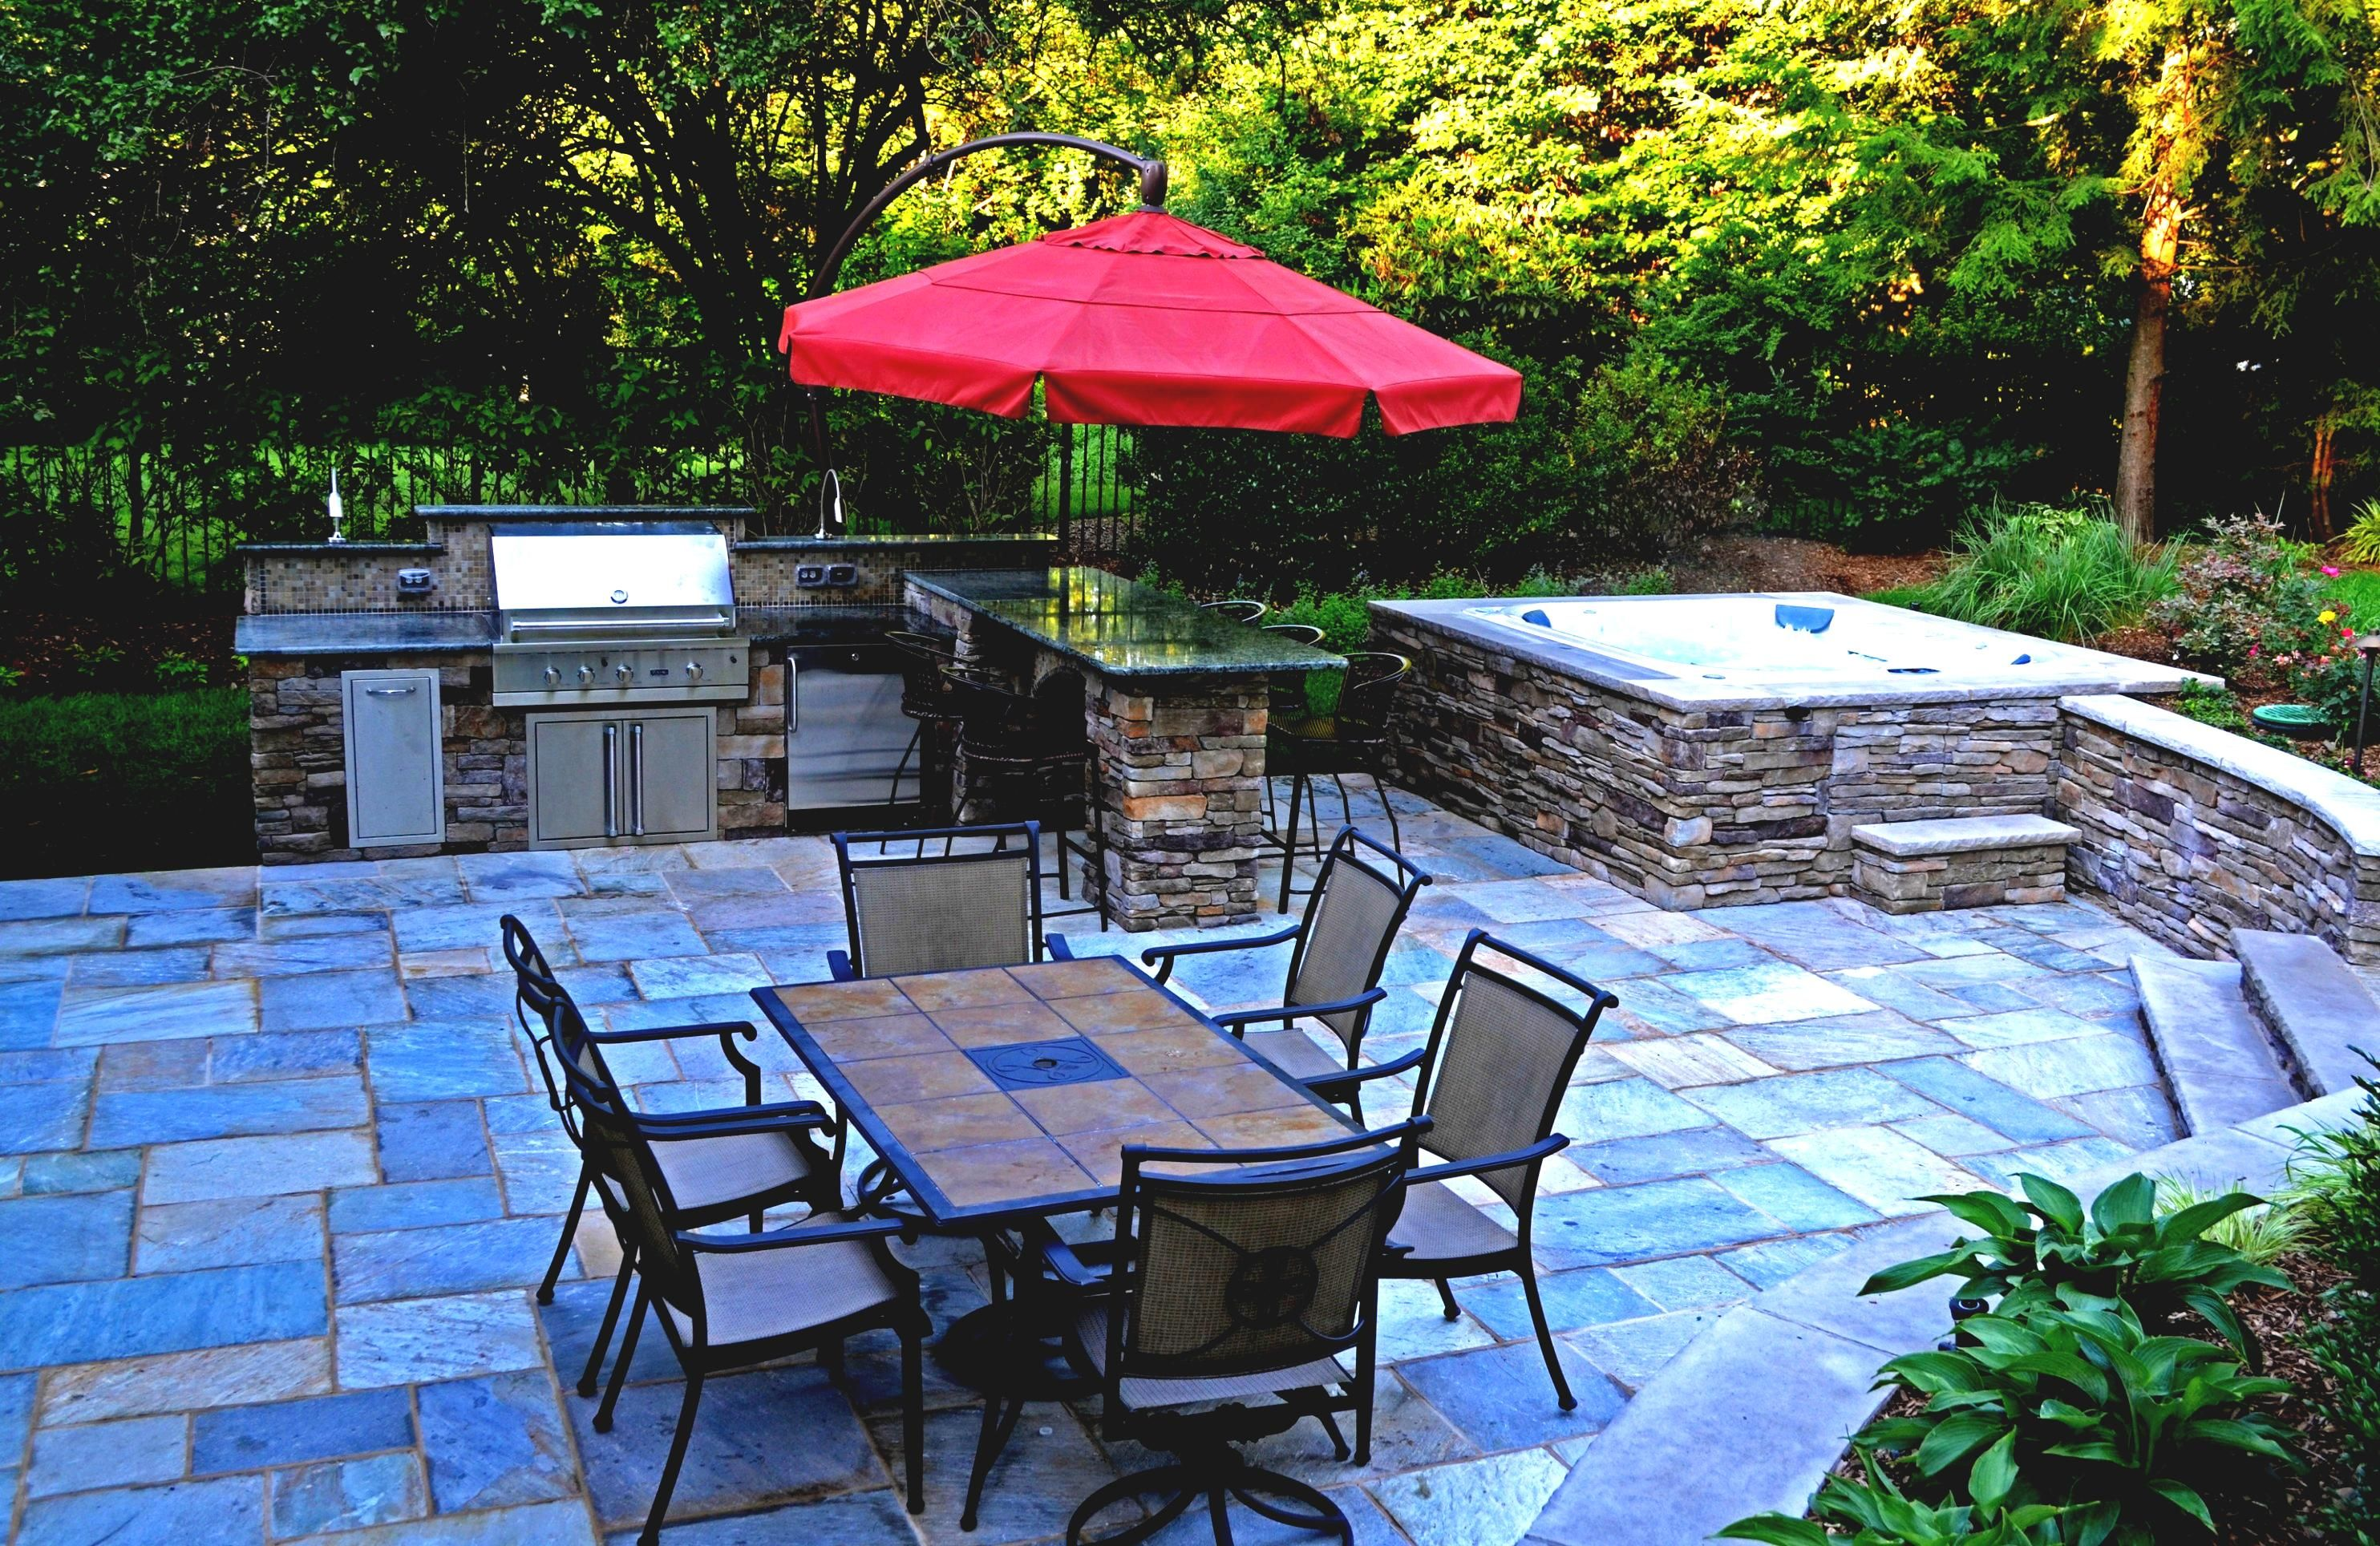 Backyard Patio Ideas With Hot Tub And Outdoor Living Furniture